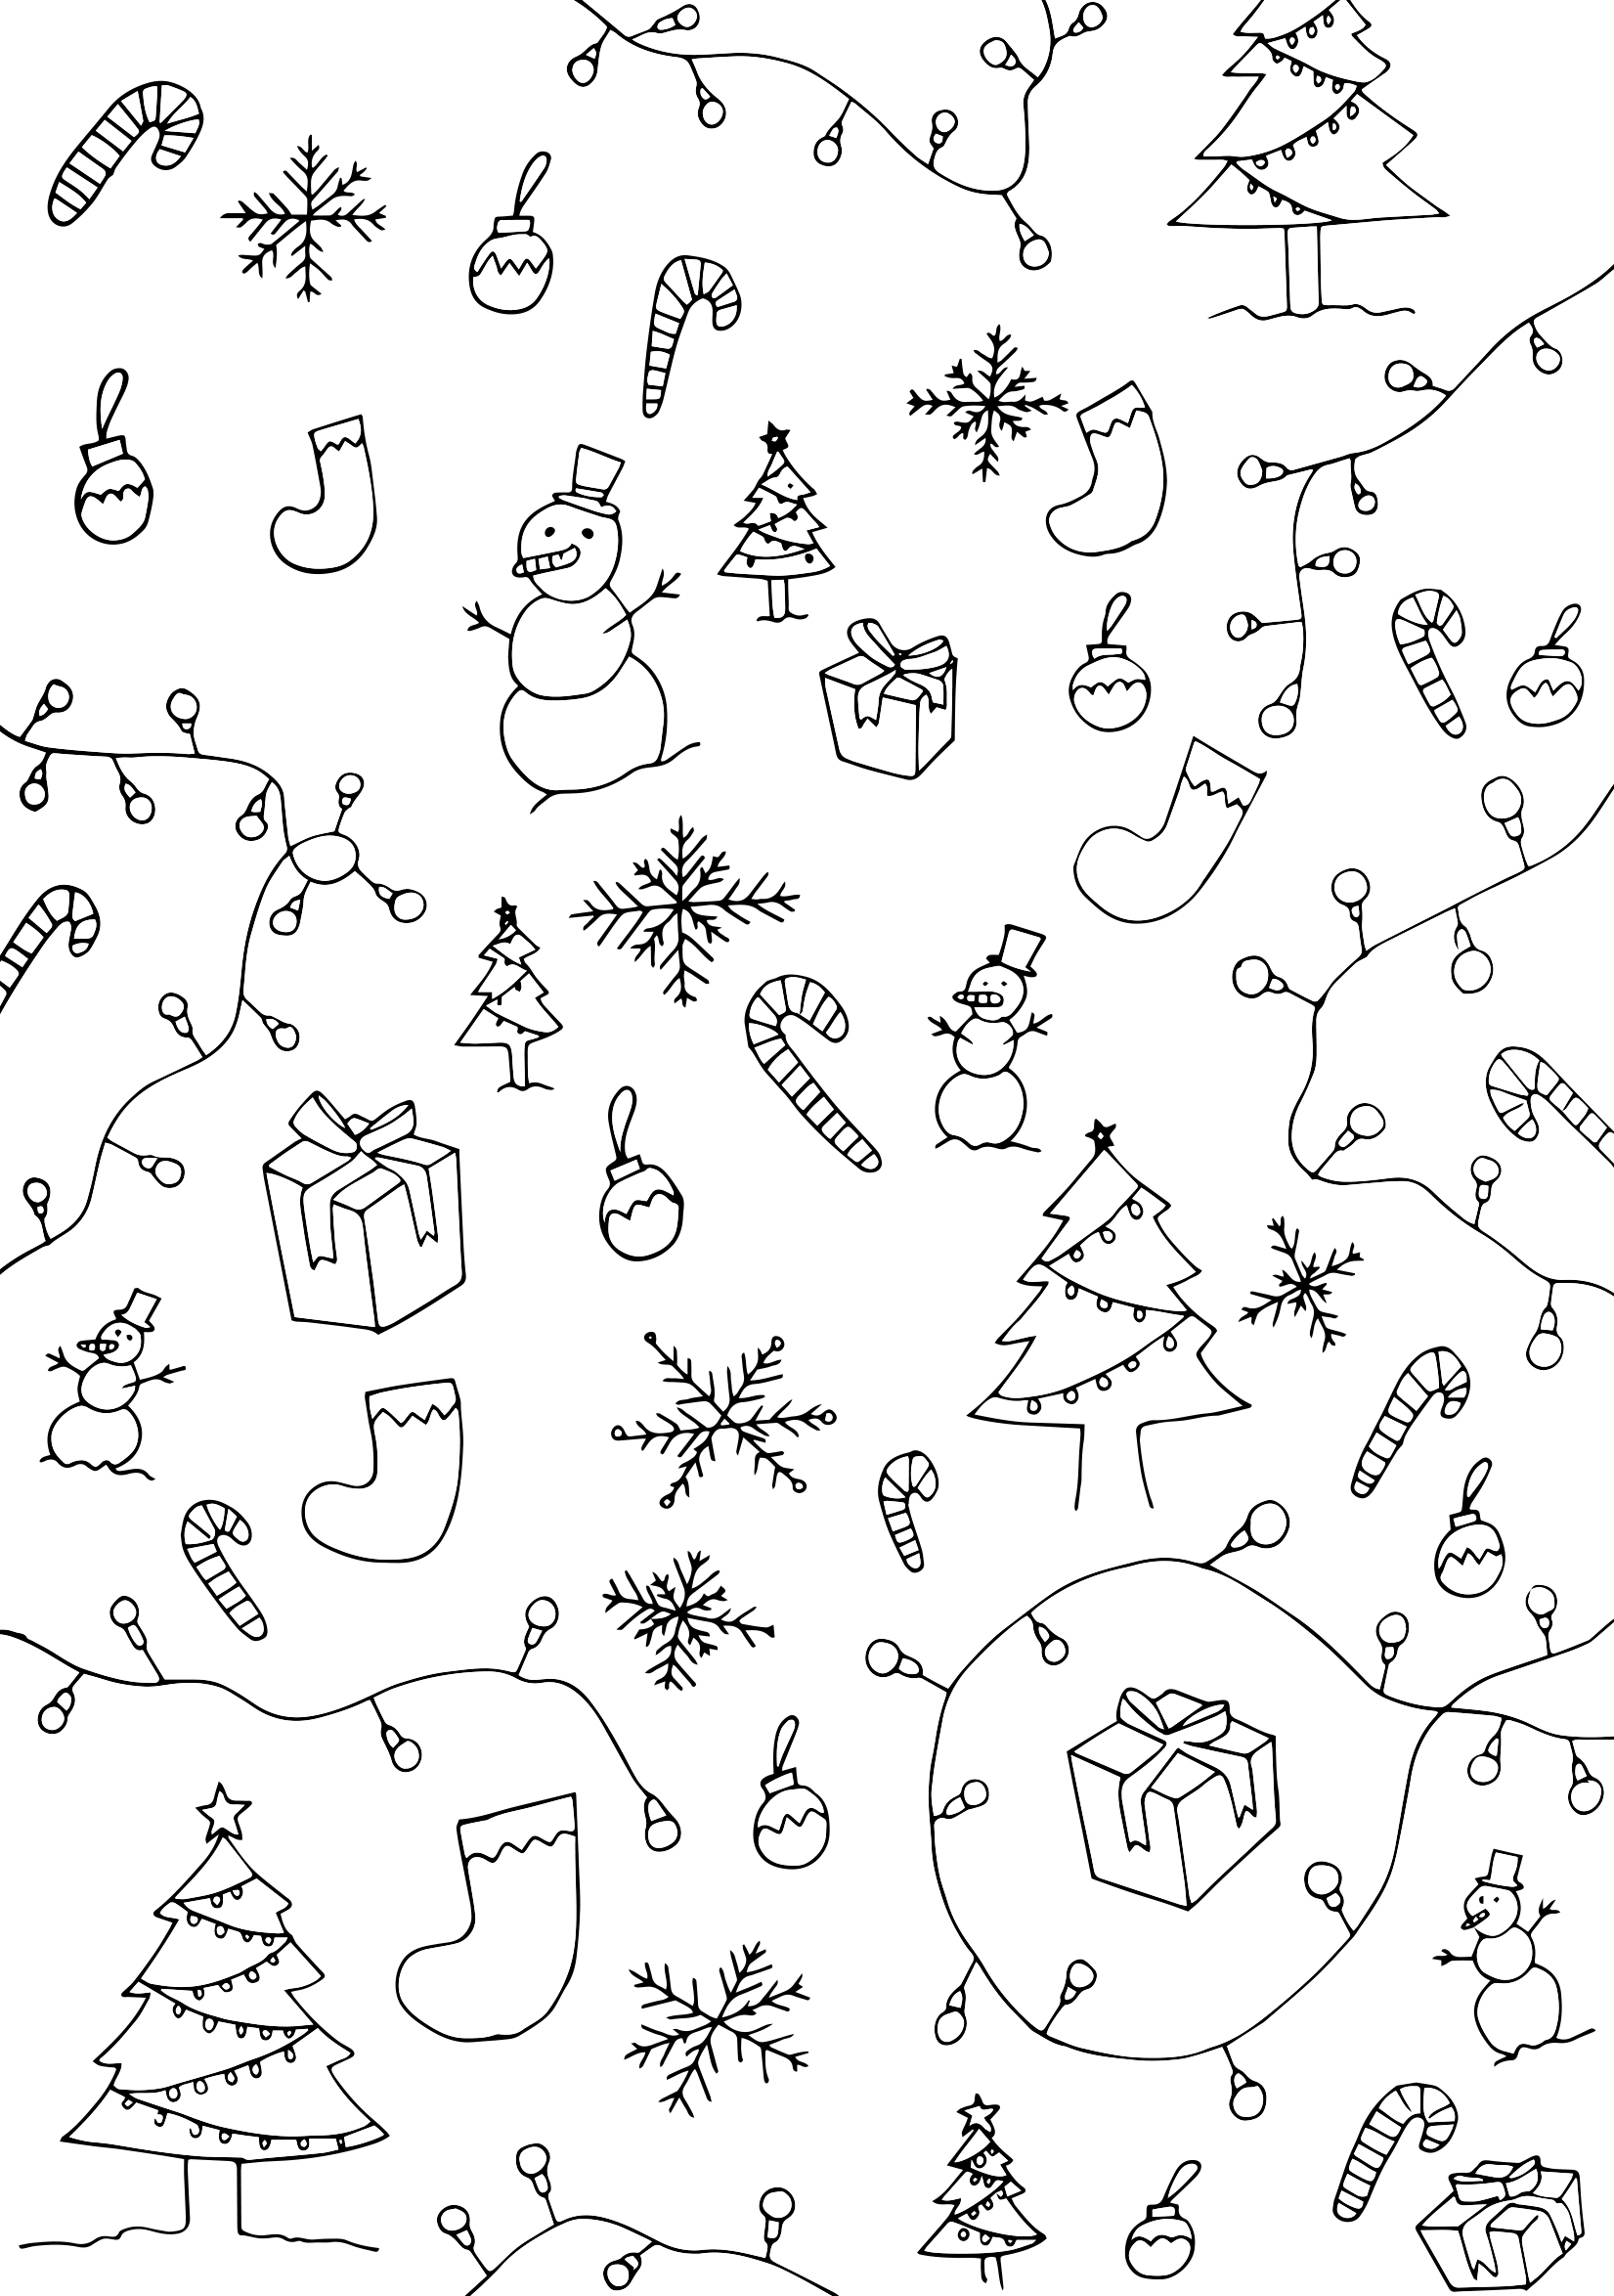 Color-your-own Christmas wrapping paper (printables) (intro)